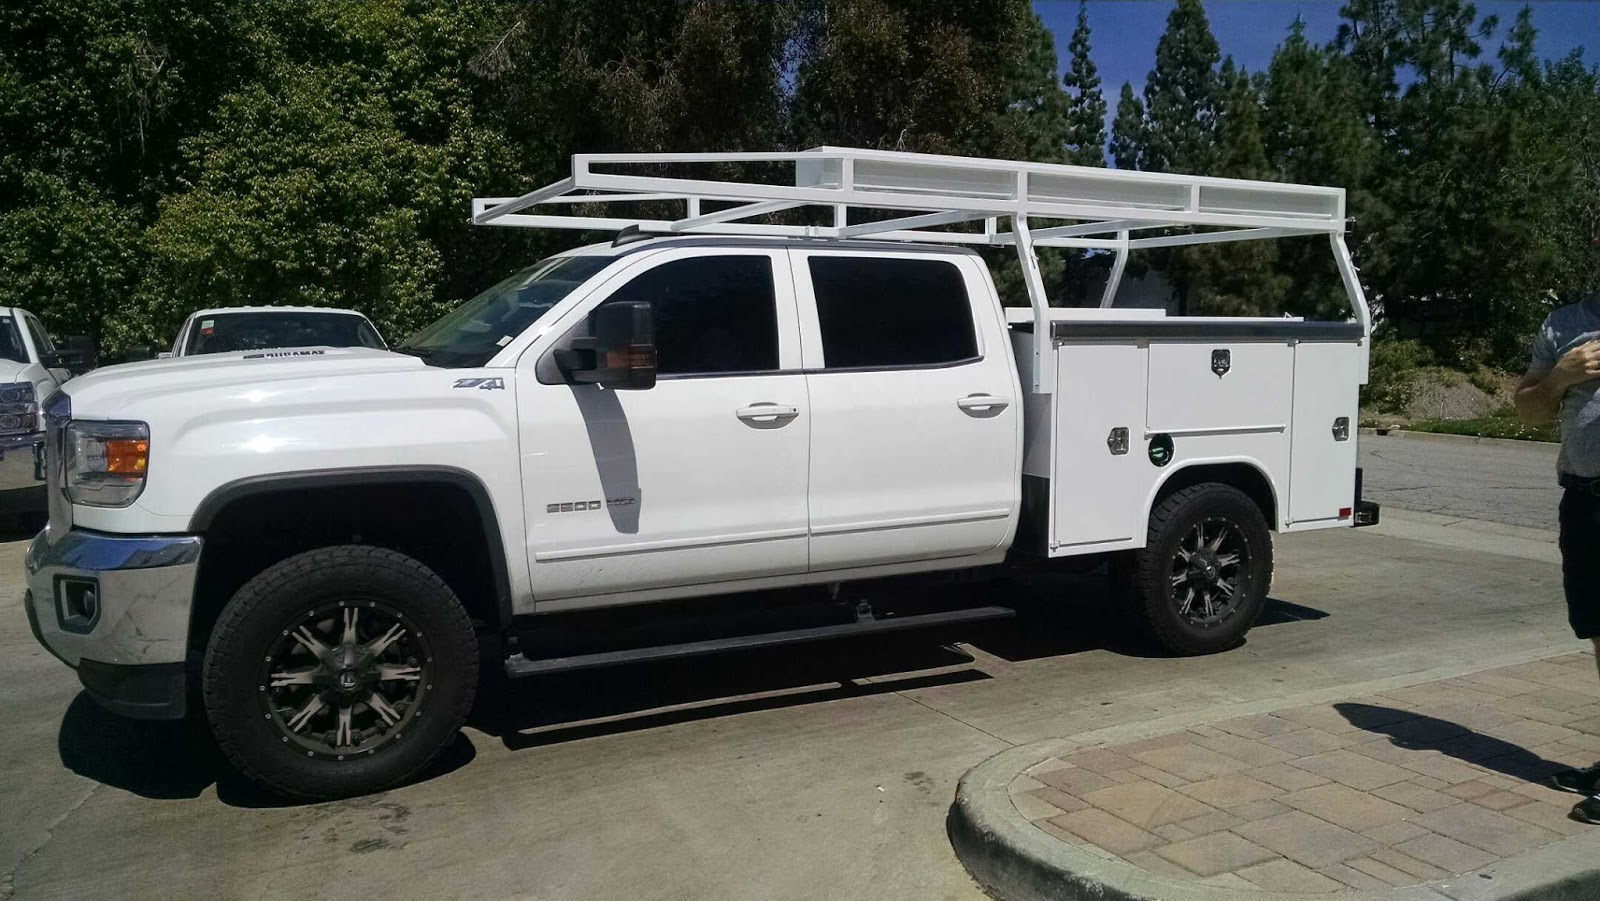 Service Bodies For Pickups : Harbor truck bodies service body and rack